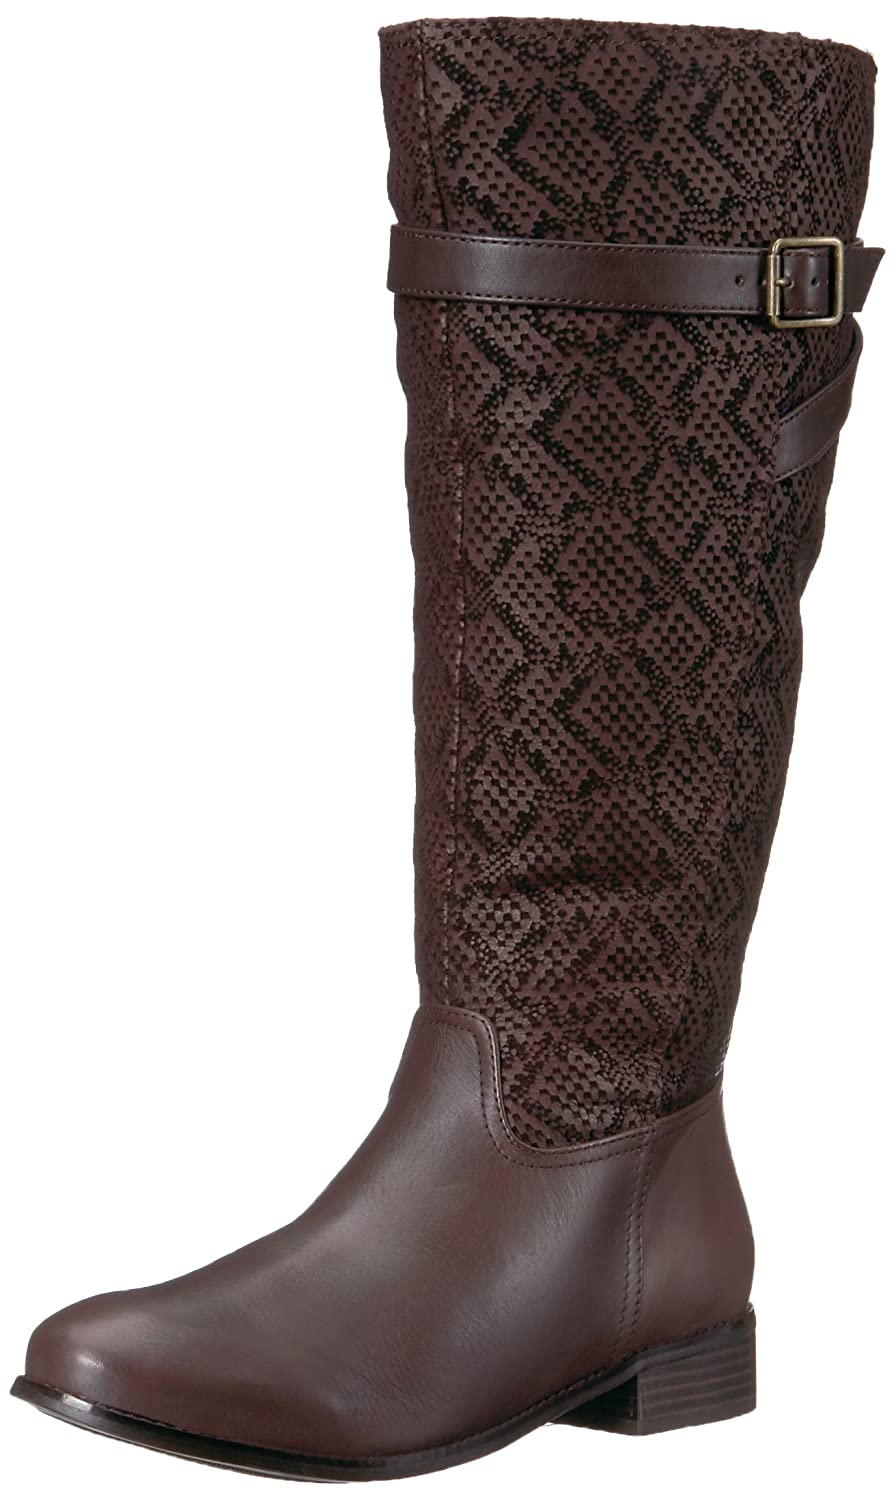 Trotters Women's Lyra Wide Calf Riding Boot B01N6JKJ0M 12 W US|Dark Brown